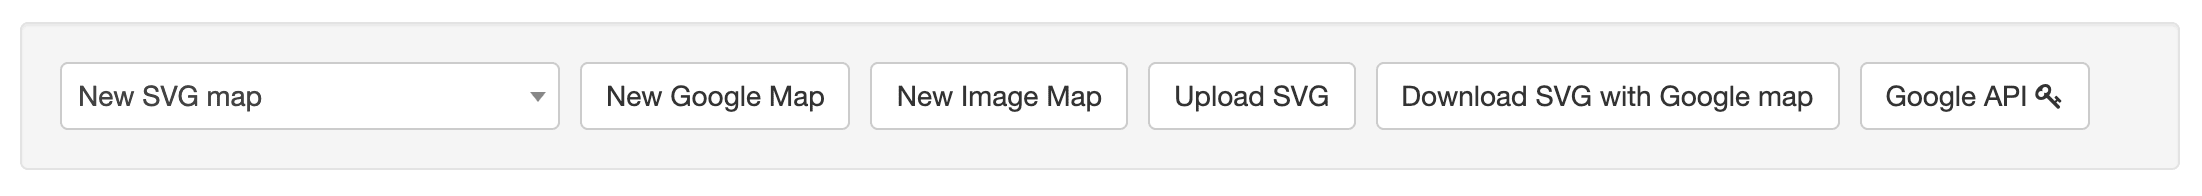 A screenshot of the MapSVG settings with options for the type of map to create. Options include Google Map, image map, upload SVG, download SVG with Google map, and Google API.